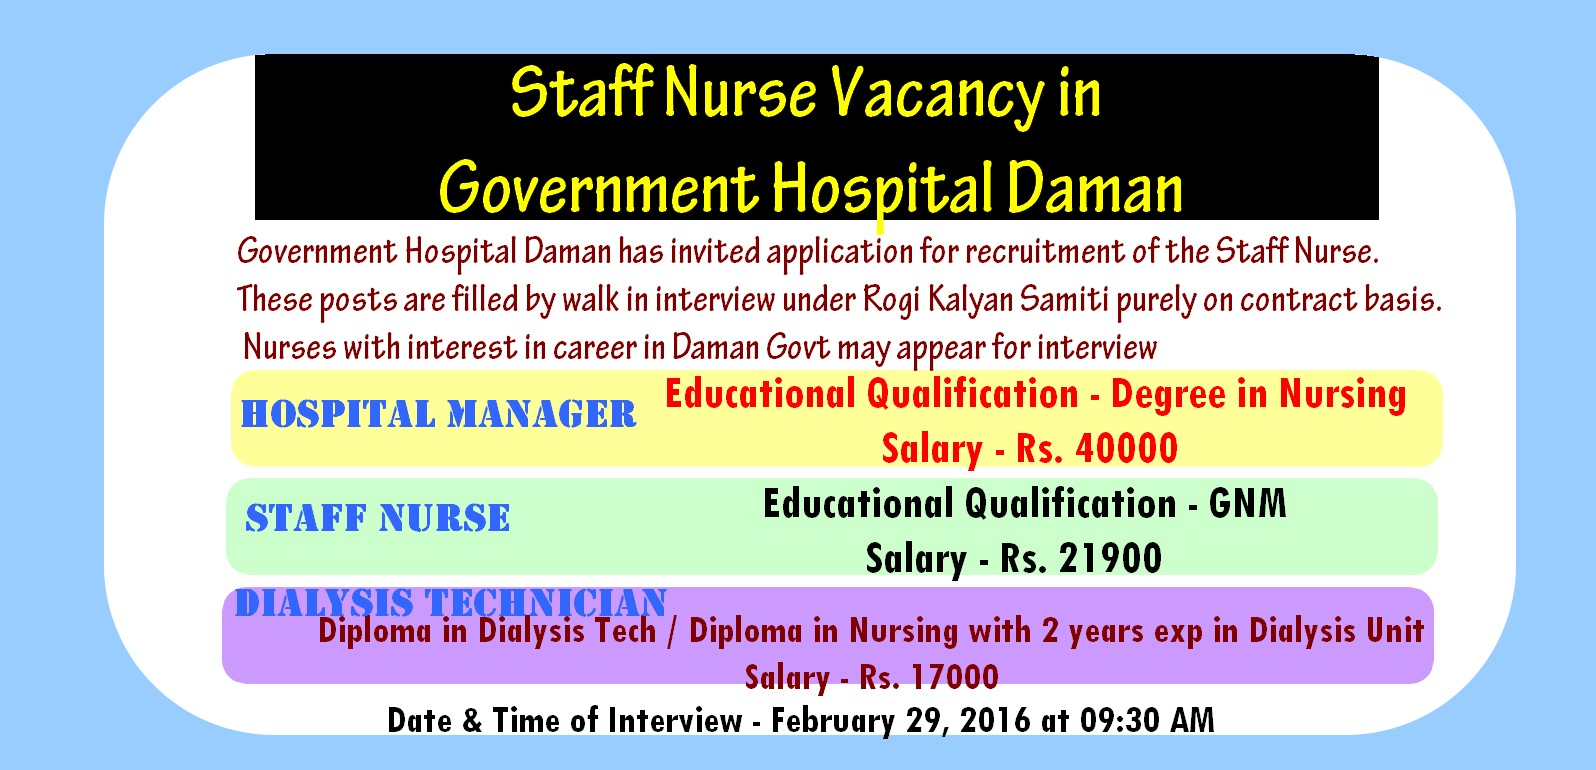 staff nurse vacancy in government hospital daman  government hospital daman has invited application for recruitment of the staff nurse these posts are filled by walk in interview under rogi kalyan samiti